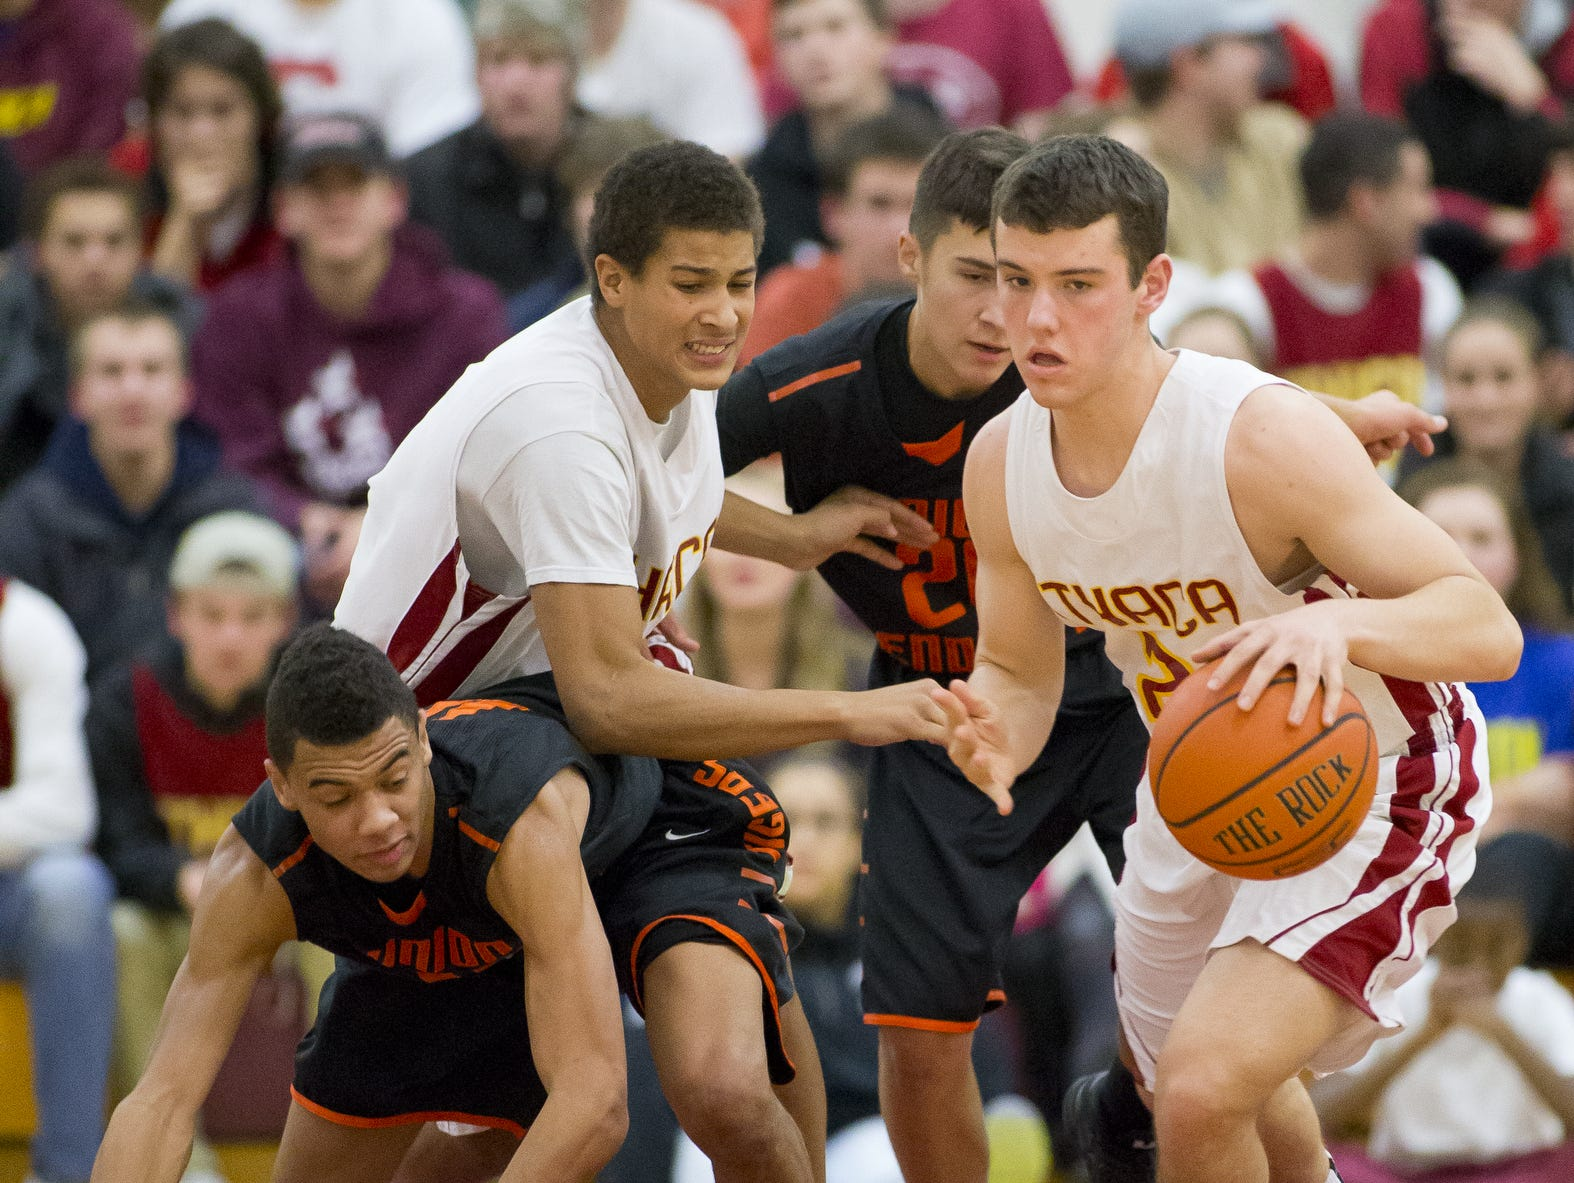 From left, Union-Endicott's Zac Camber tangles with Ithaca's Jordan Ayers while U-E's Snowden Vose looks to pursue Ithaca's Caleb Klausner up the court has he takes away loose ball in a game last year. The Little Red are looking to improve on last year's record, in which they netted 11 wins.